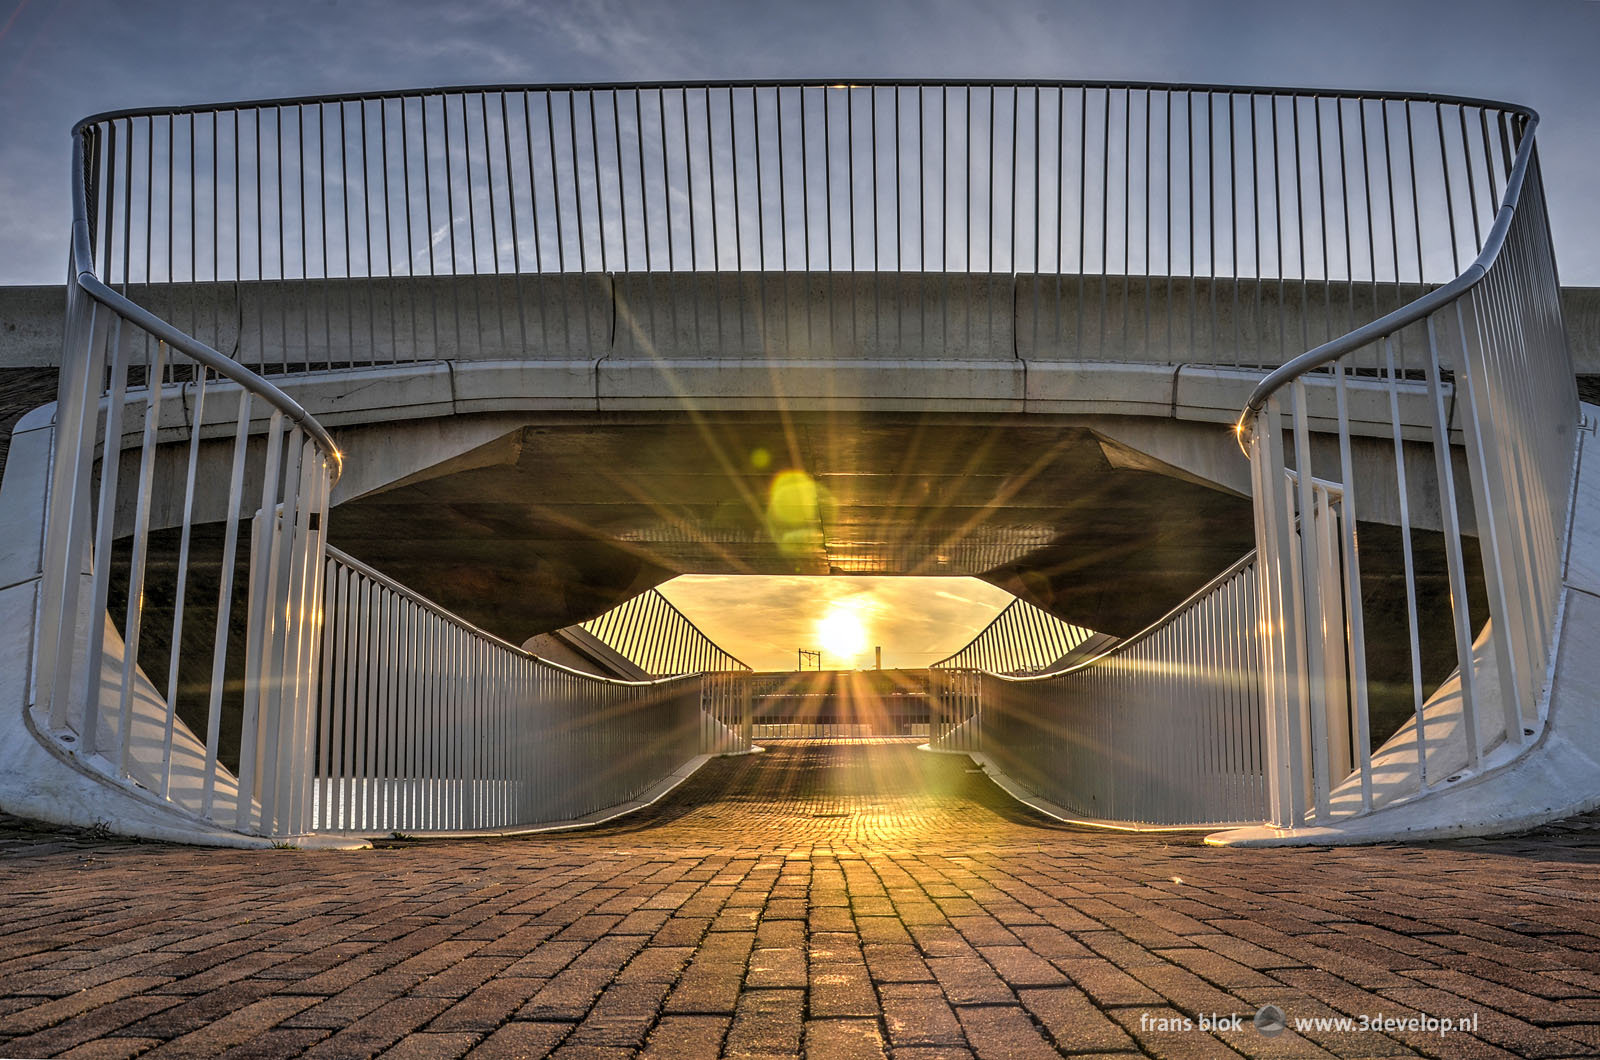 The setting sun shines exactly through one of the pedestrian shortcuts under the Lentloper bridge in Nijmegen